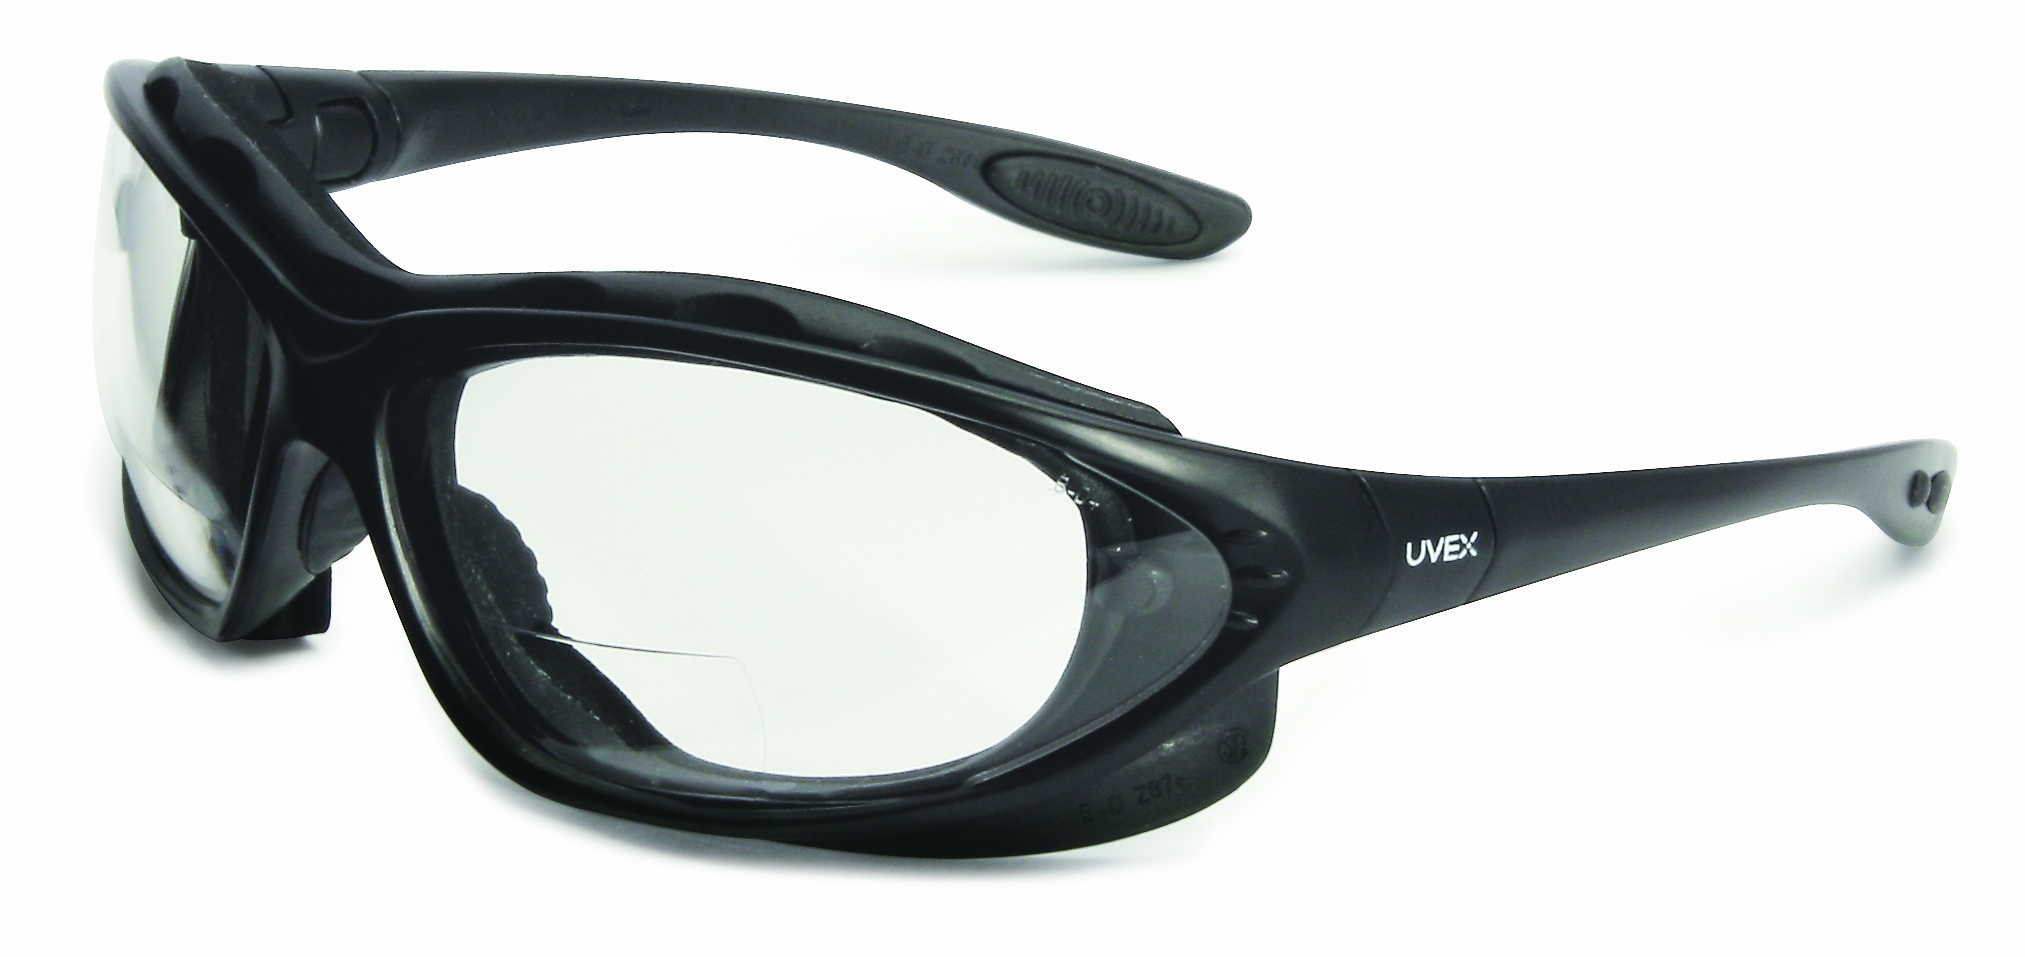 S0661X - Uvex Seismic® Sealed Eyewear with Reading Magnifiers-Uvex Seismic® Sealed Eyewear with Reading Magnifiers, Clear +1.5 Diopter Lens, Black Frame-----UOM: 1/EA